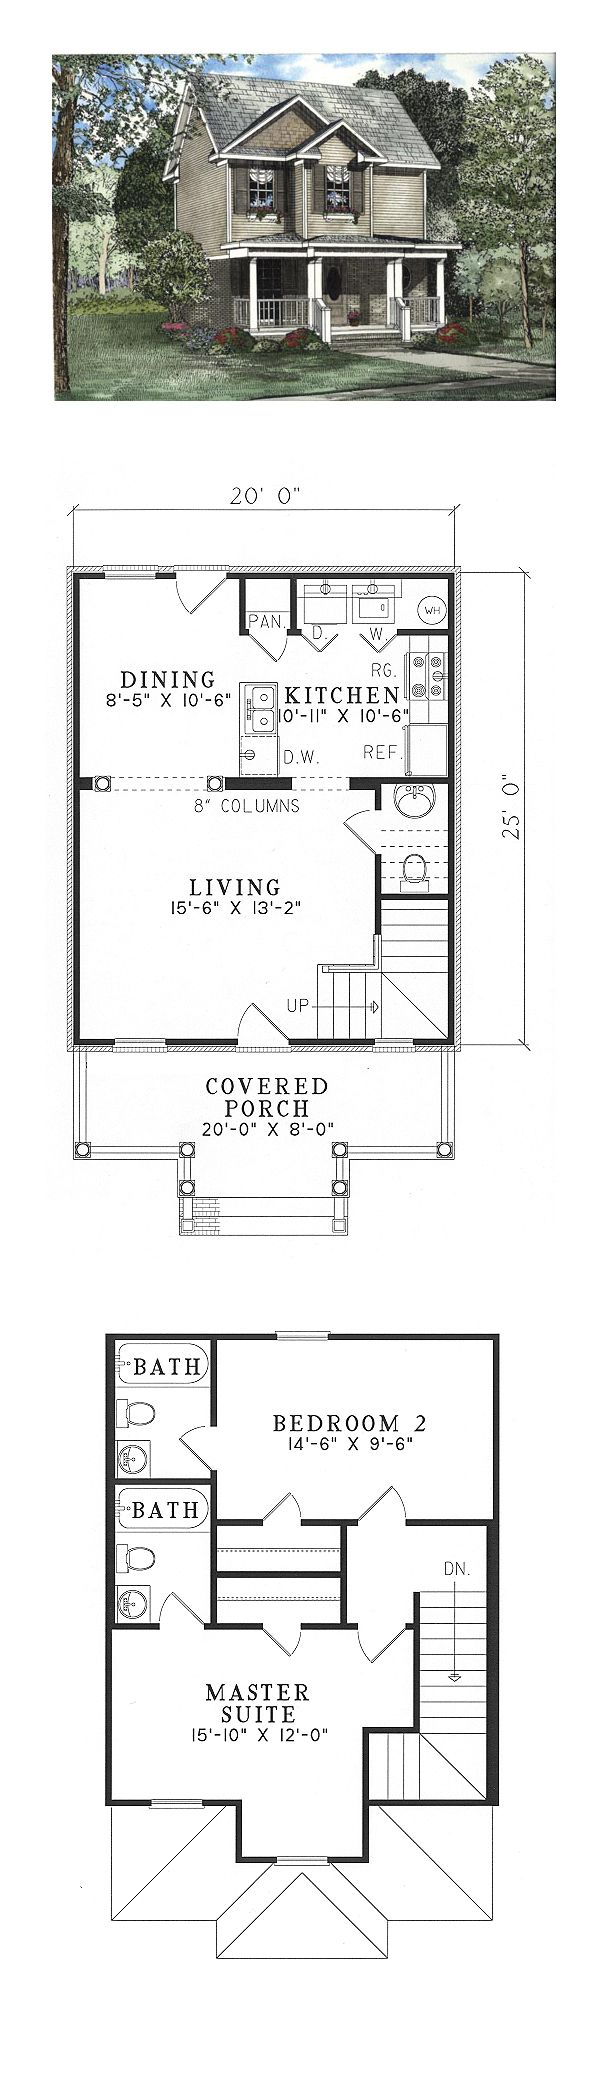 Best 25 narrow lot house plans ideas on pinterest House floor plans narrow lot